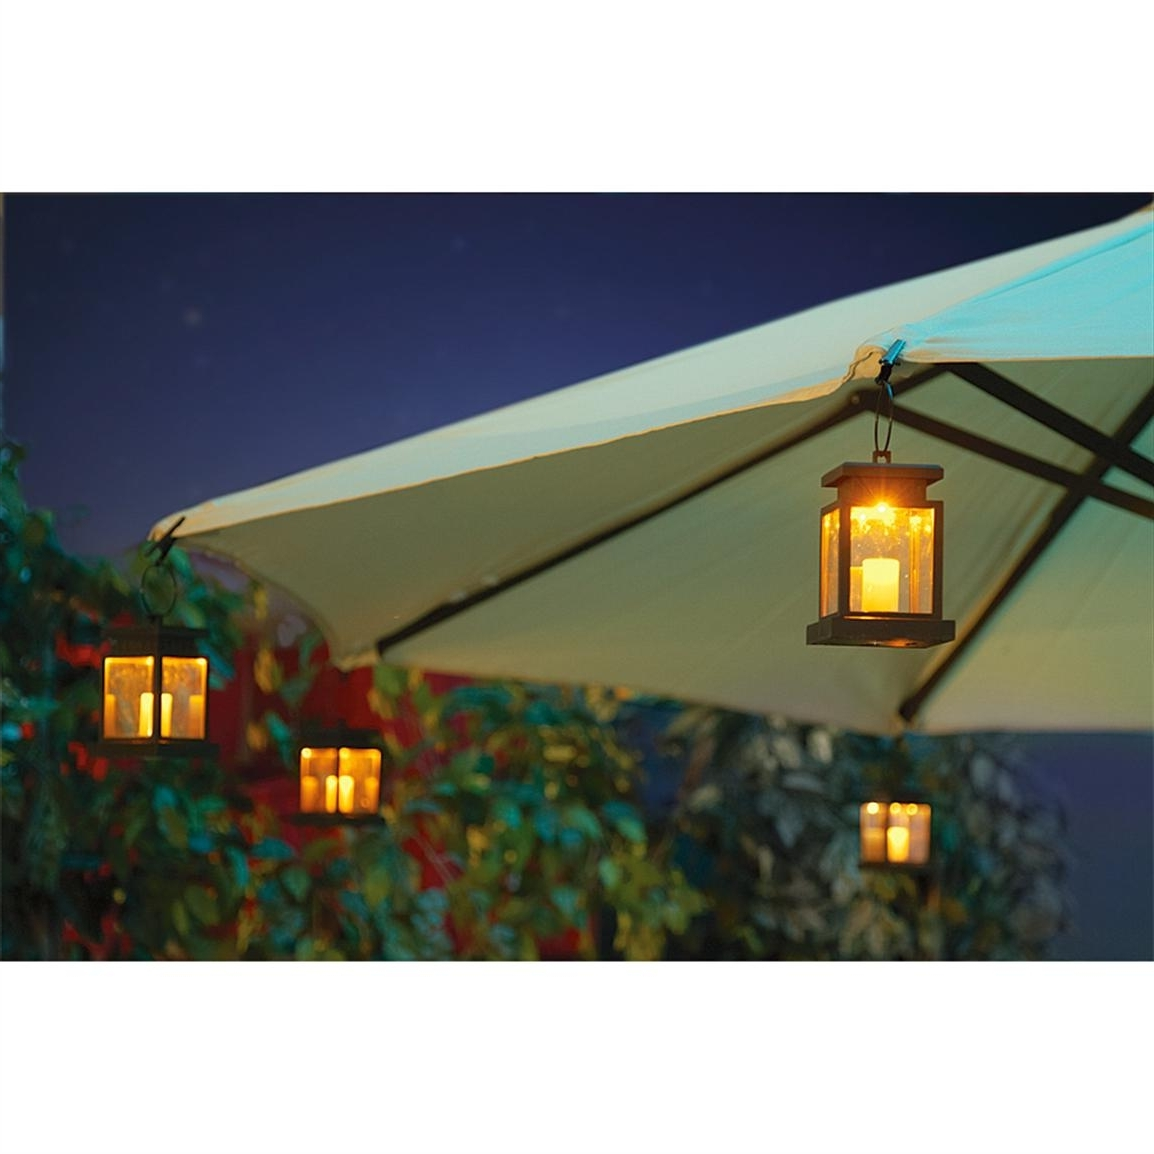 Famous Patio Umbrella Lights For Outdoor Light : Extraordinary Patio Umbrella Lights Battery Operated (View 4 of 20)